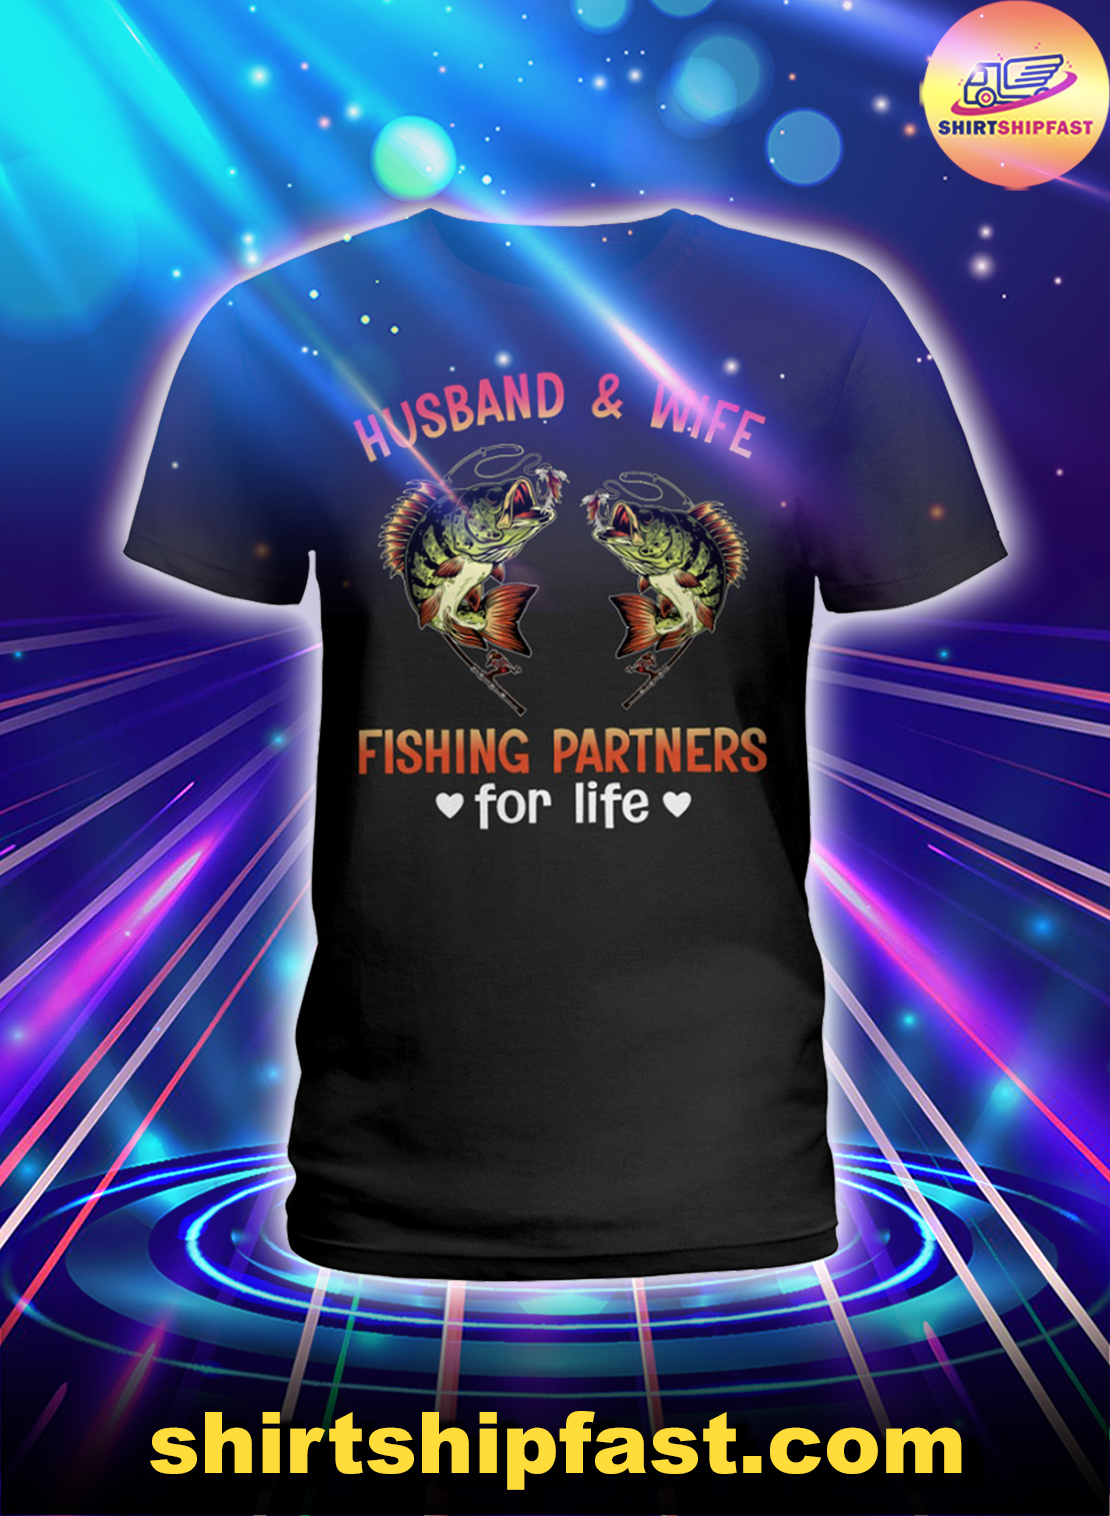 Husband and wife fishing partners for life lady shirt